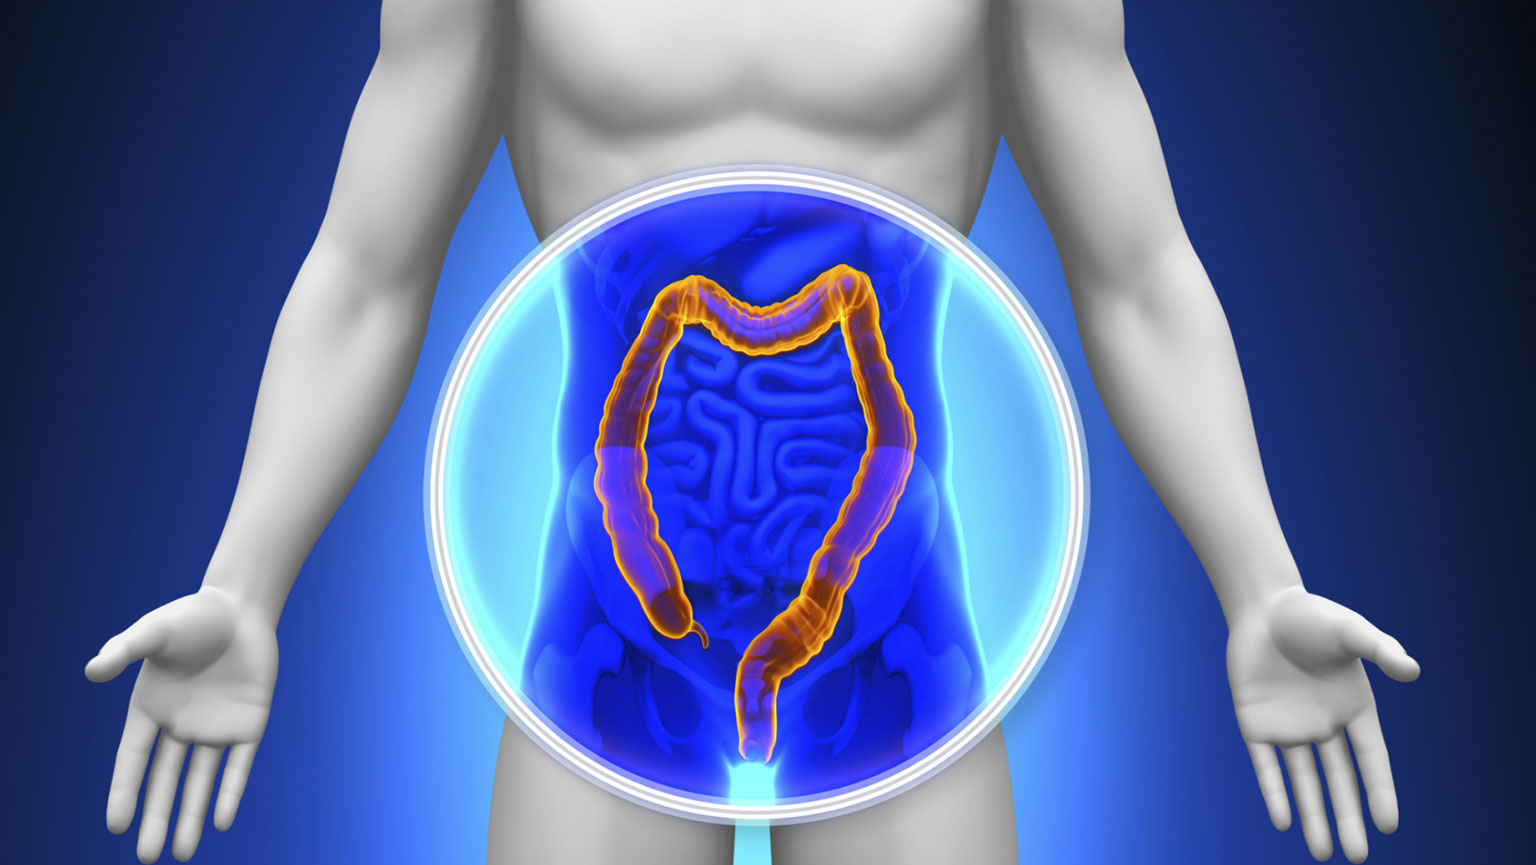 Digestive System—Physiology of the Small Intestine, Colon | The ...